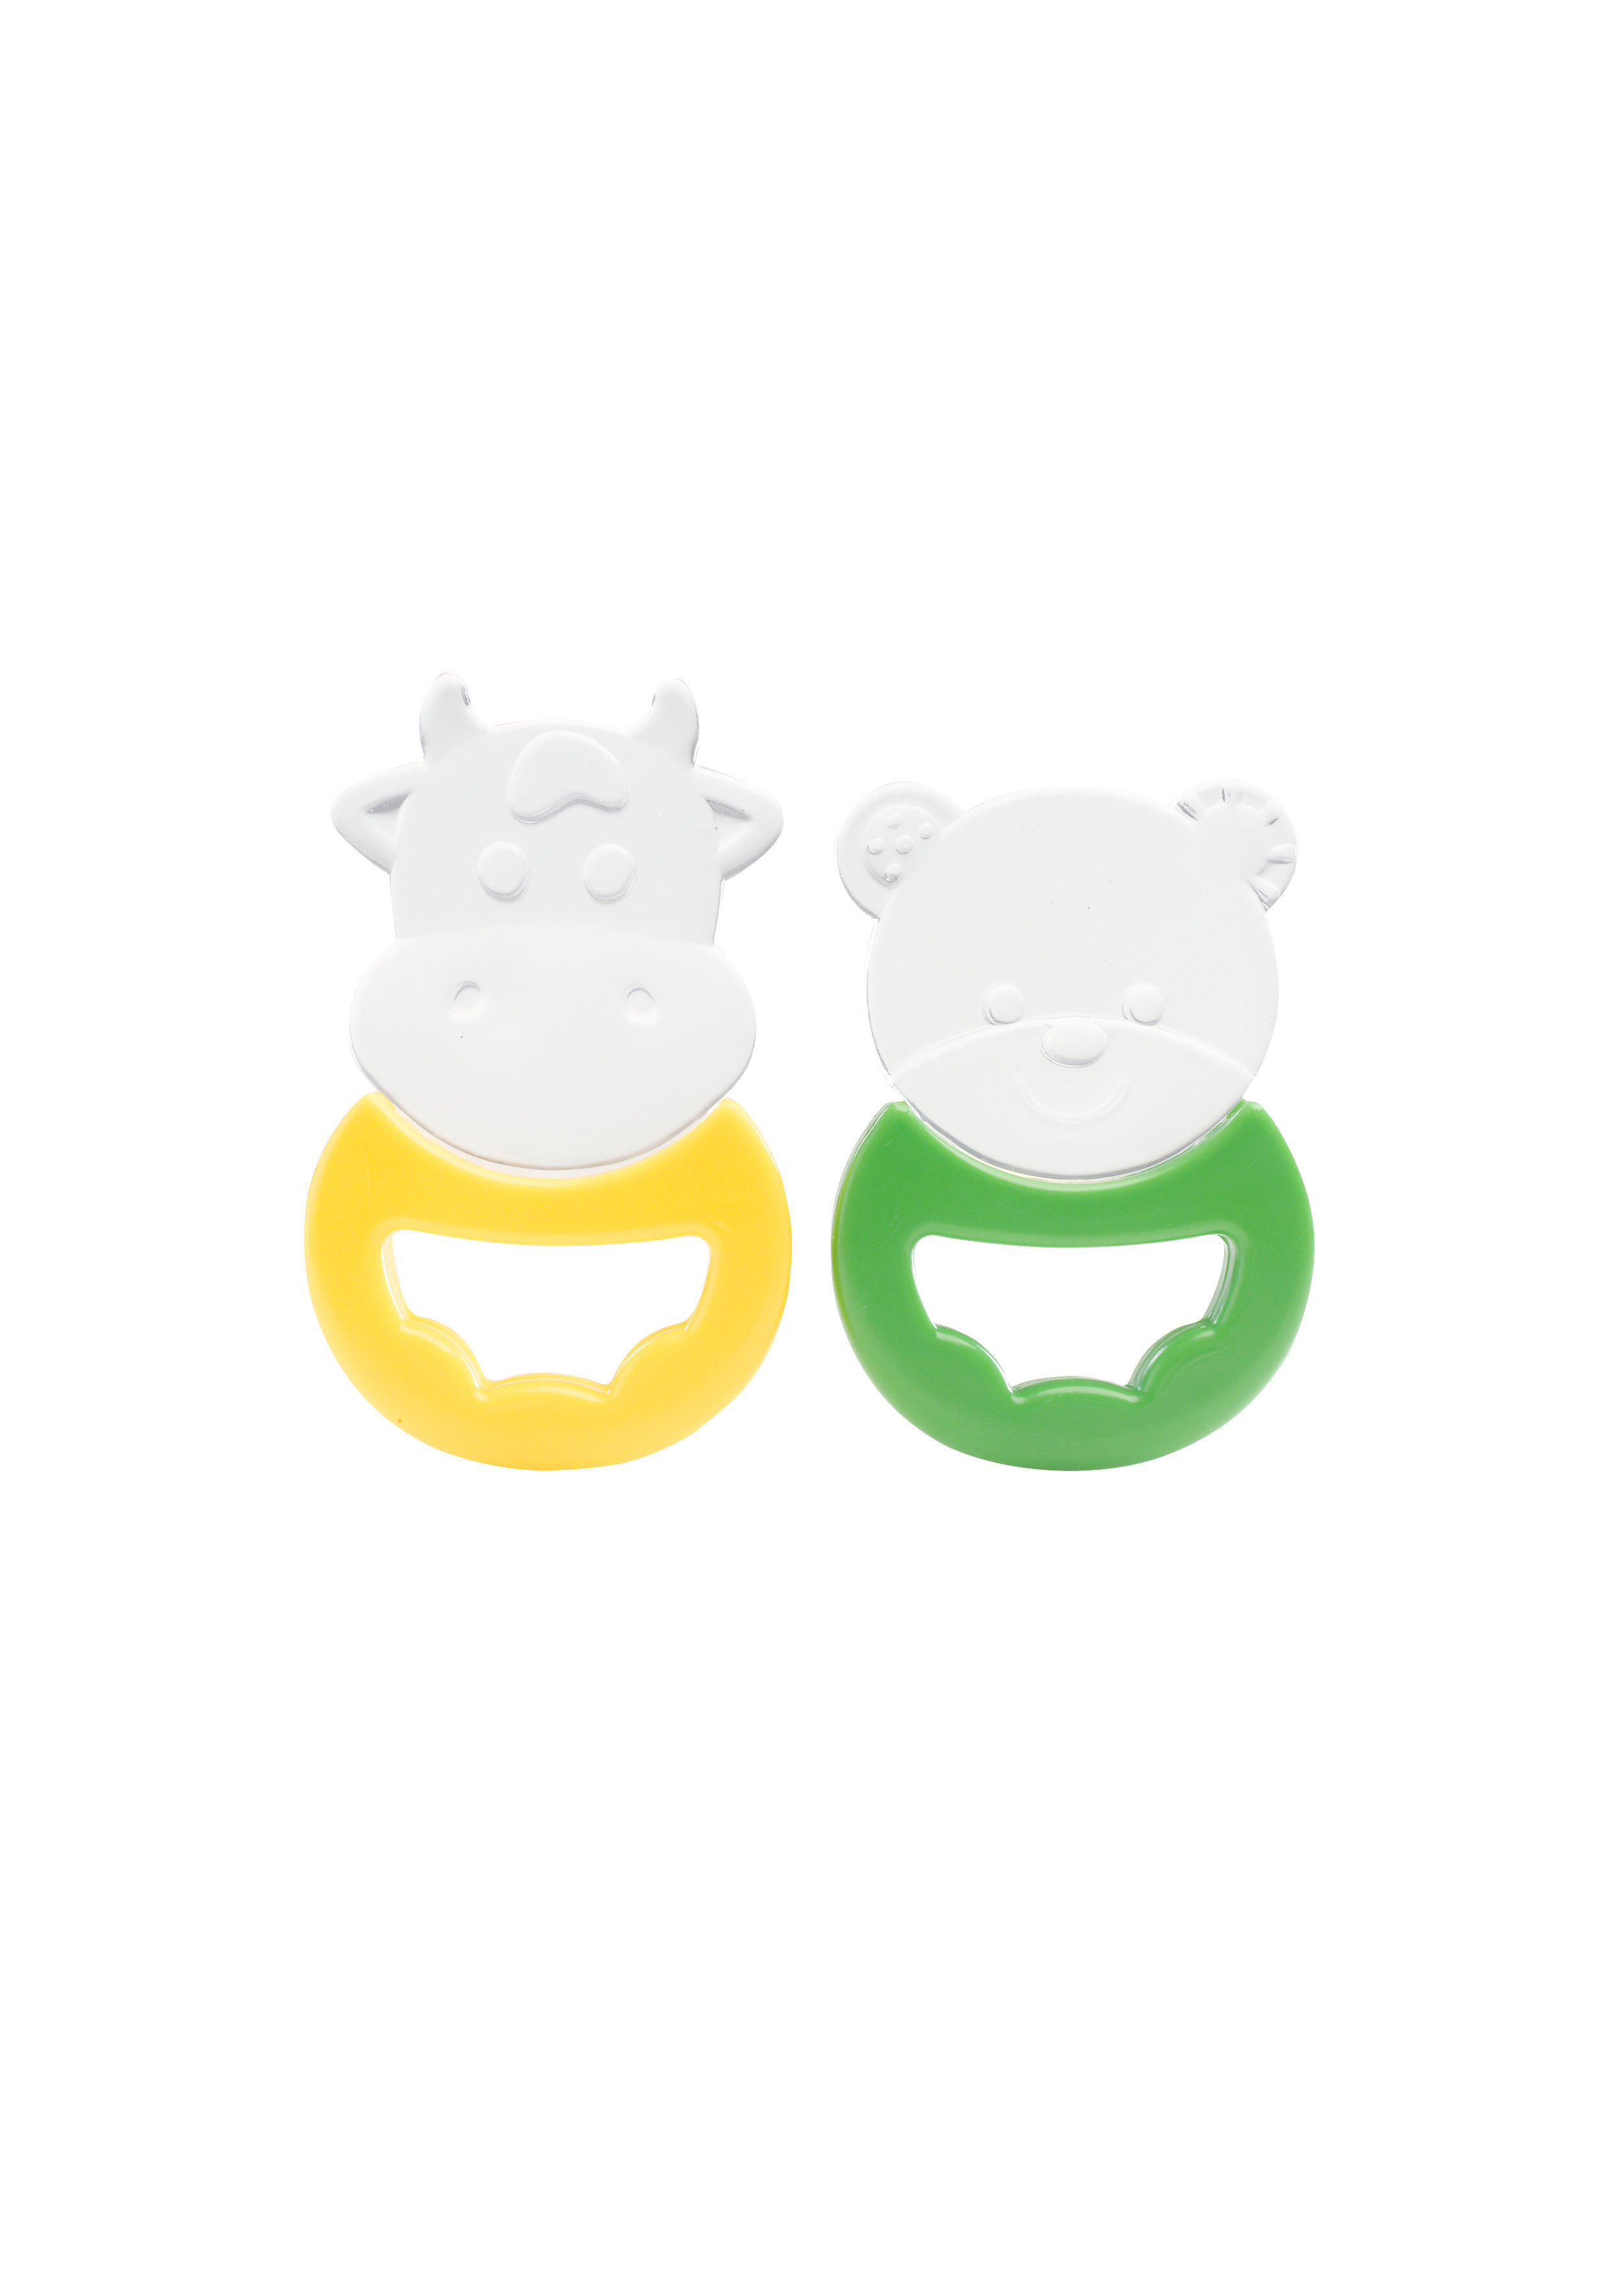 Mothercare   Yellow and Green Teether - Set of 2